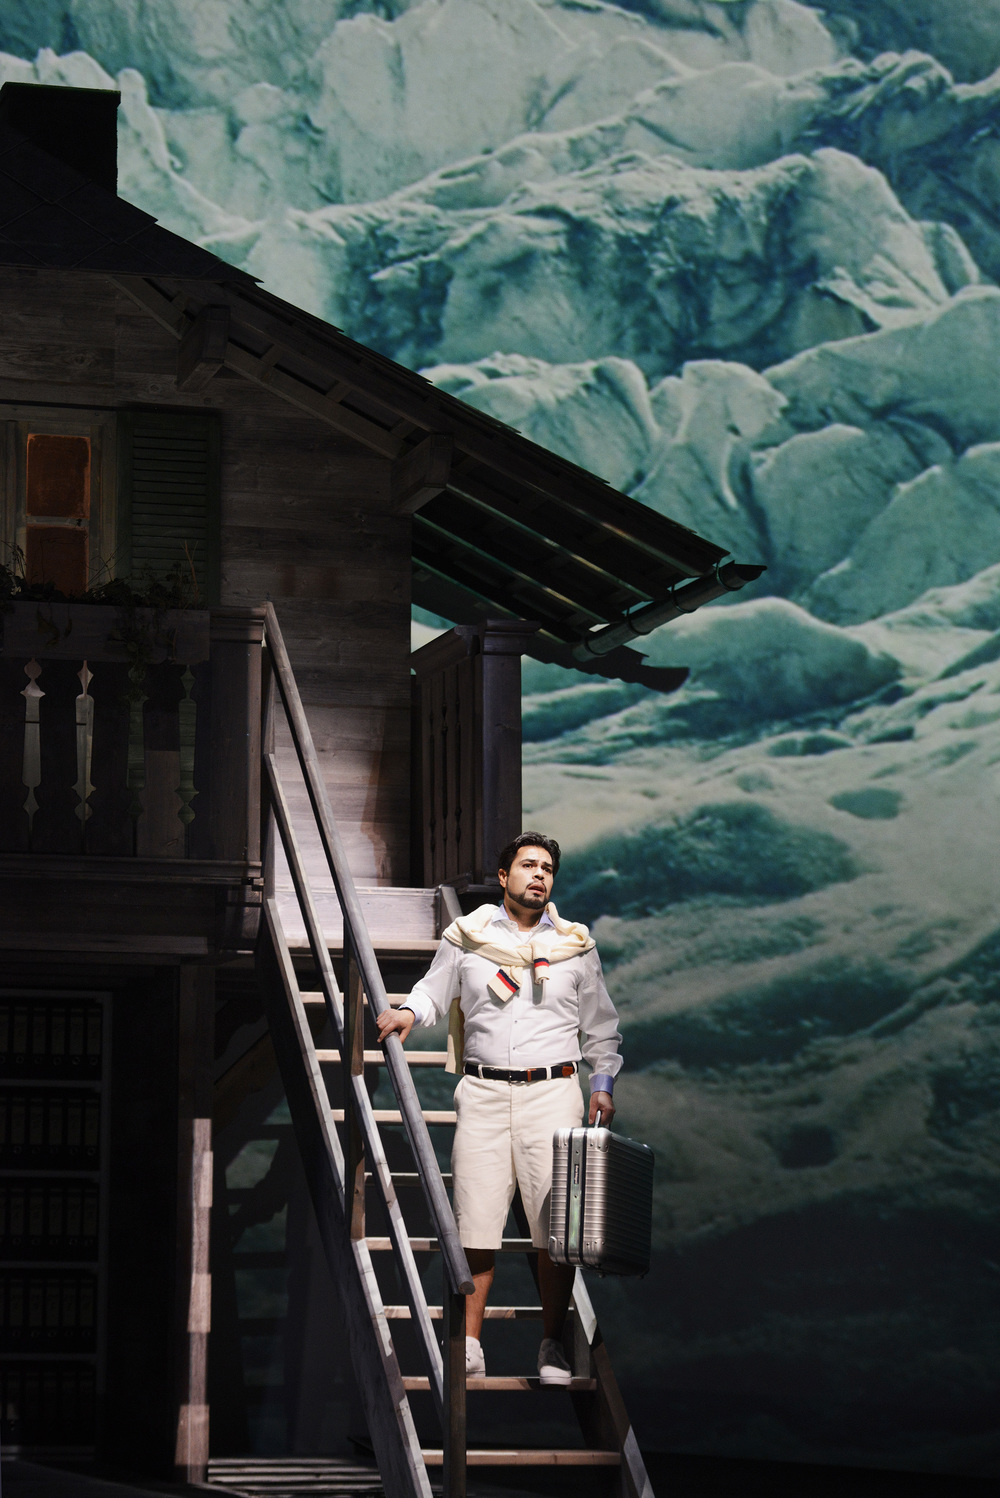 Don Pasquale at Theater Basel - film and projections by Sean Wirz (click for more pictures and video)